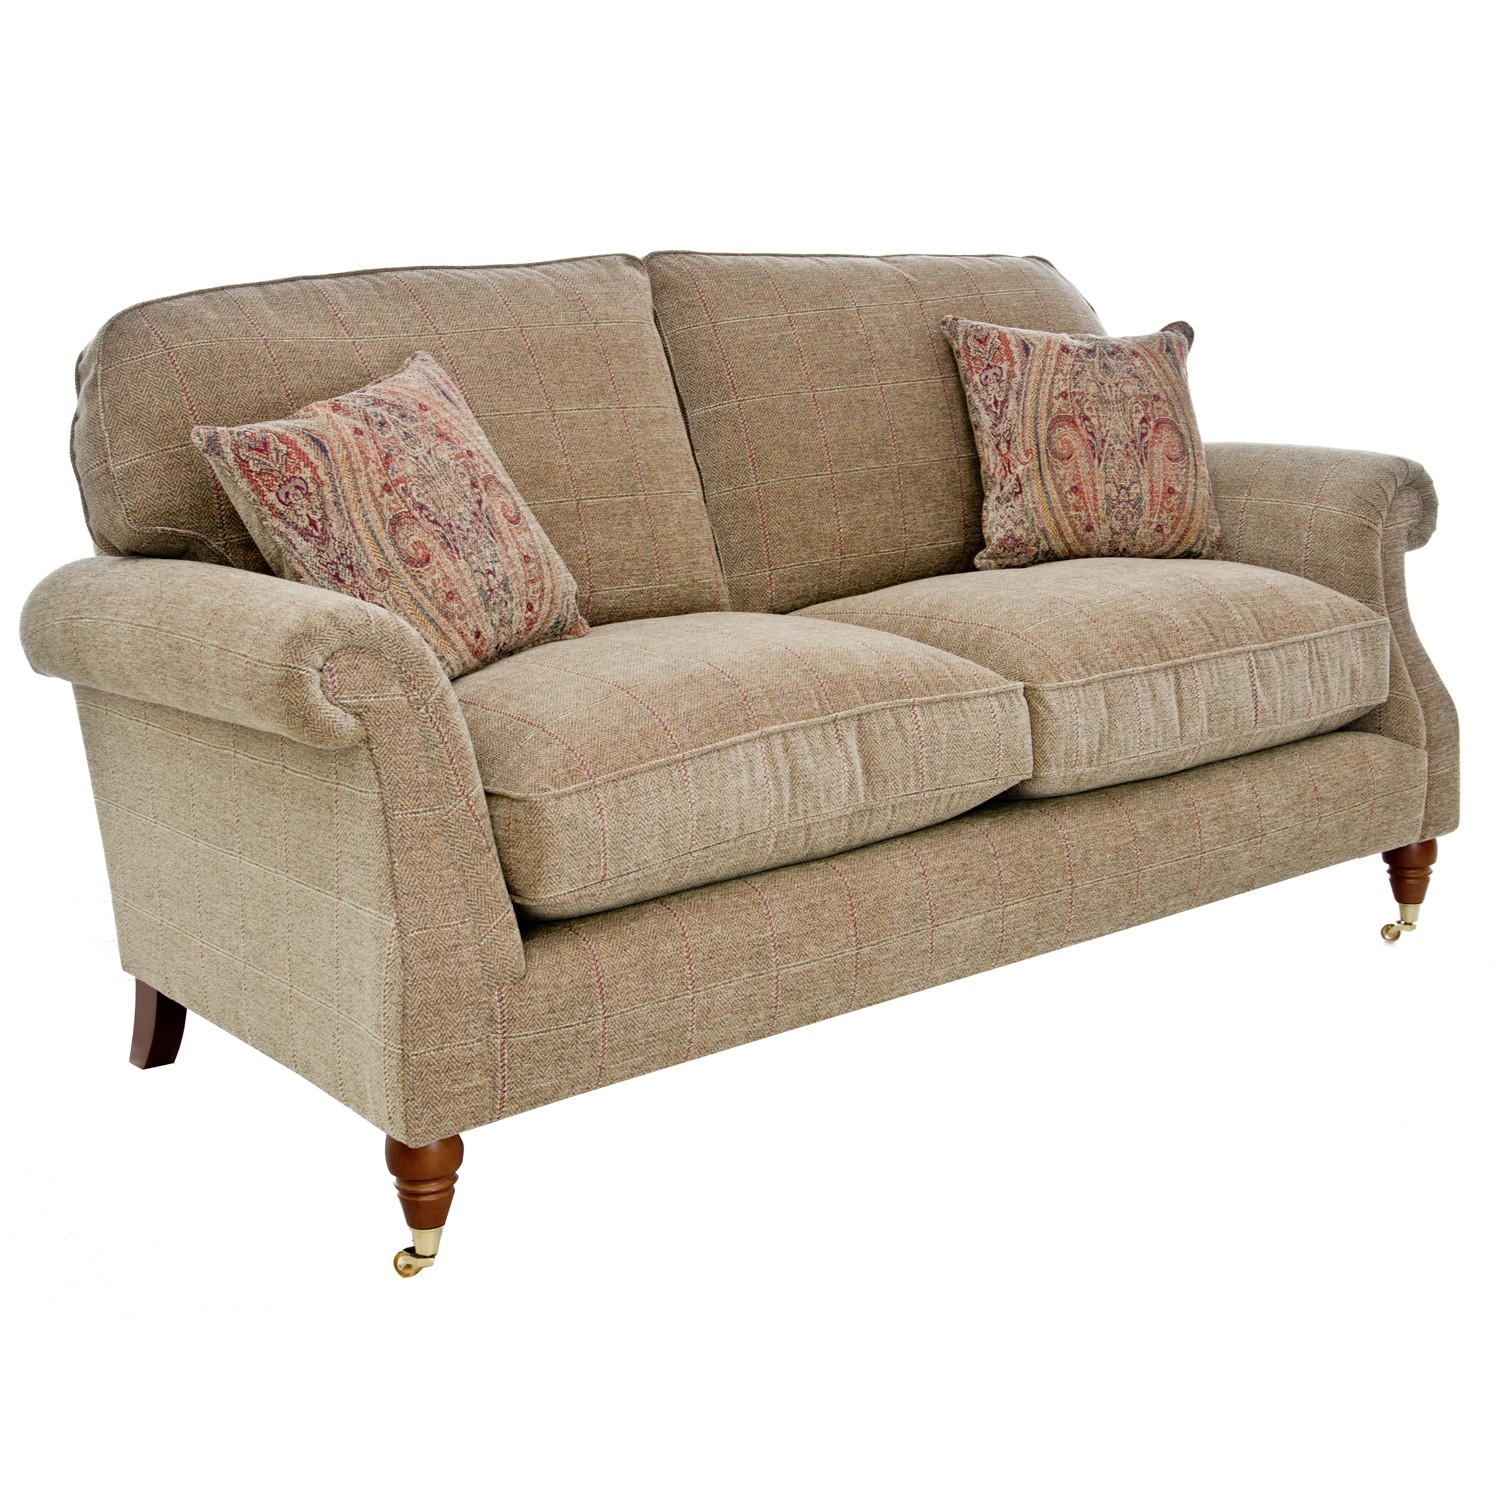 Parker knoll westbury two seater sofa for Sofa 7 seater